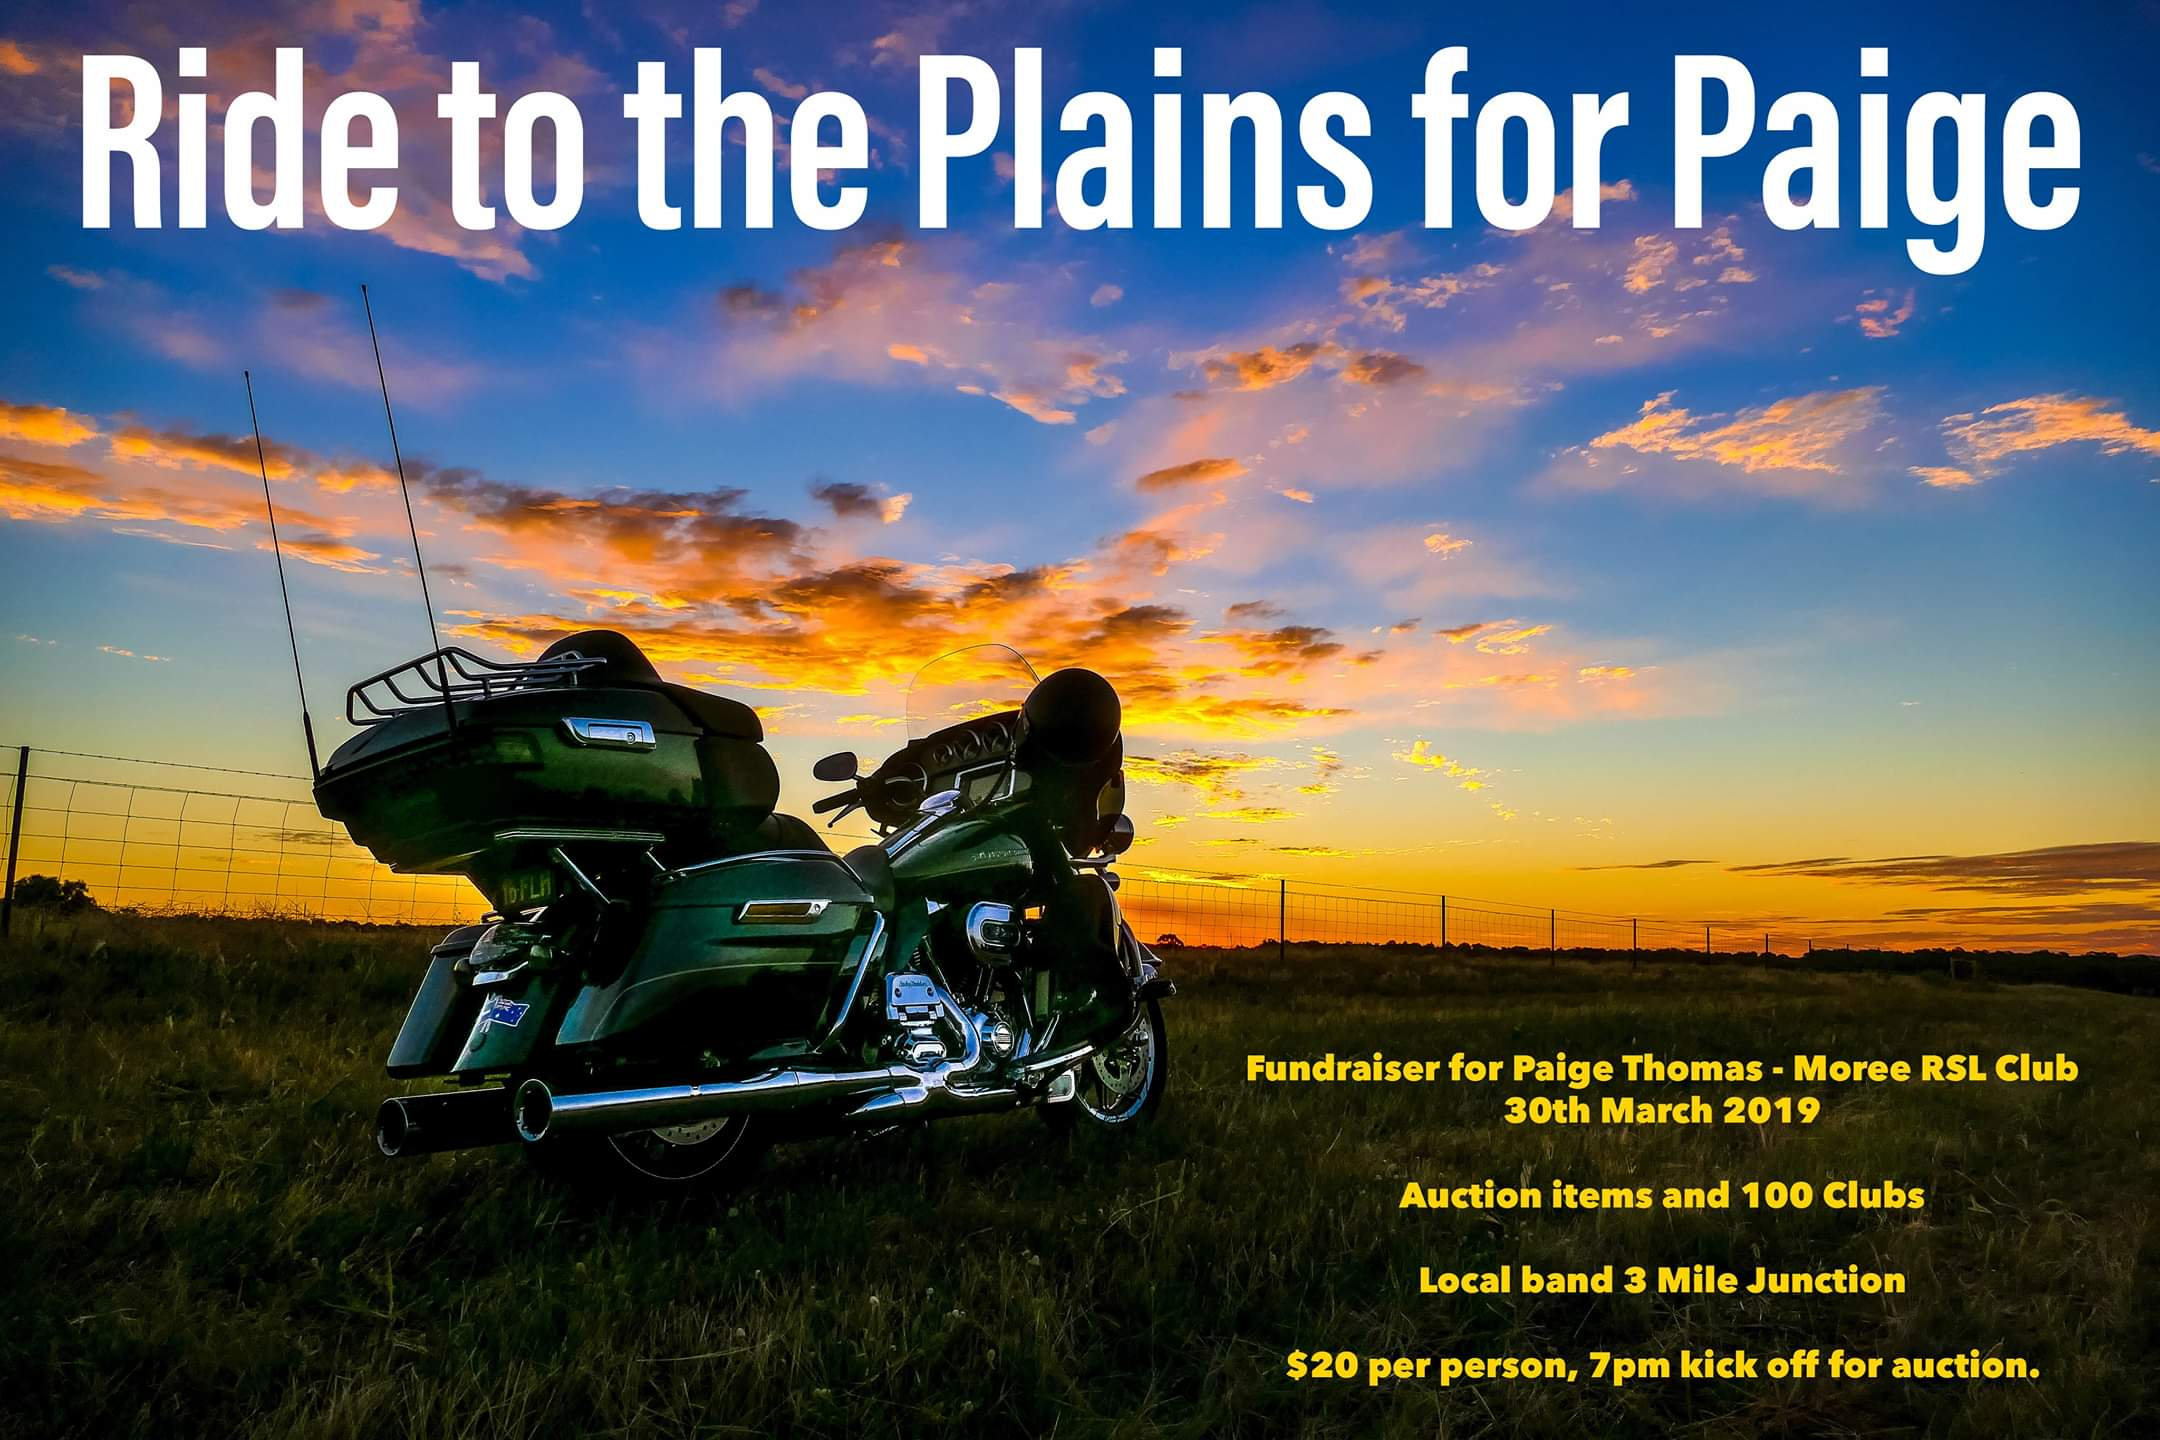 Ride to the Plains for Paige